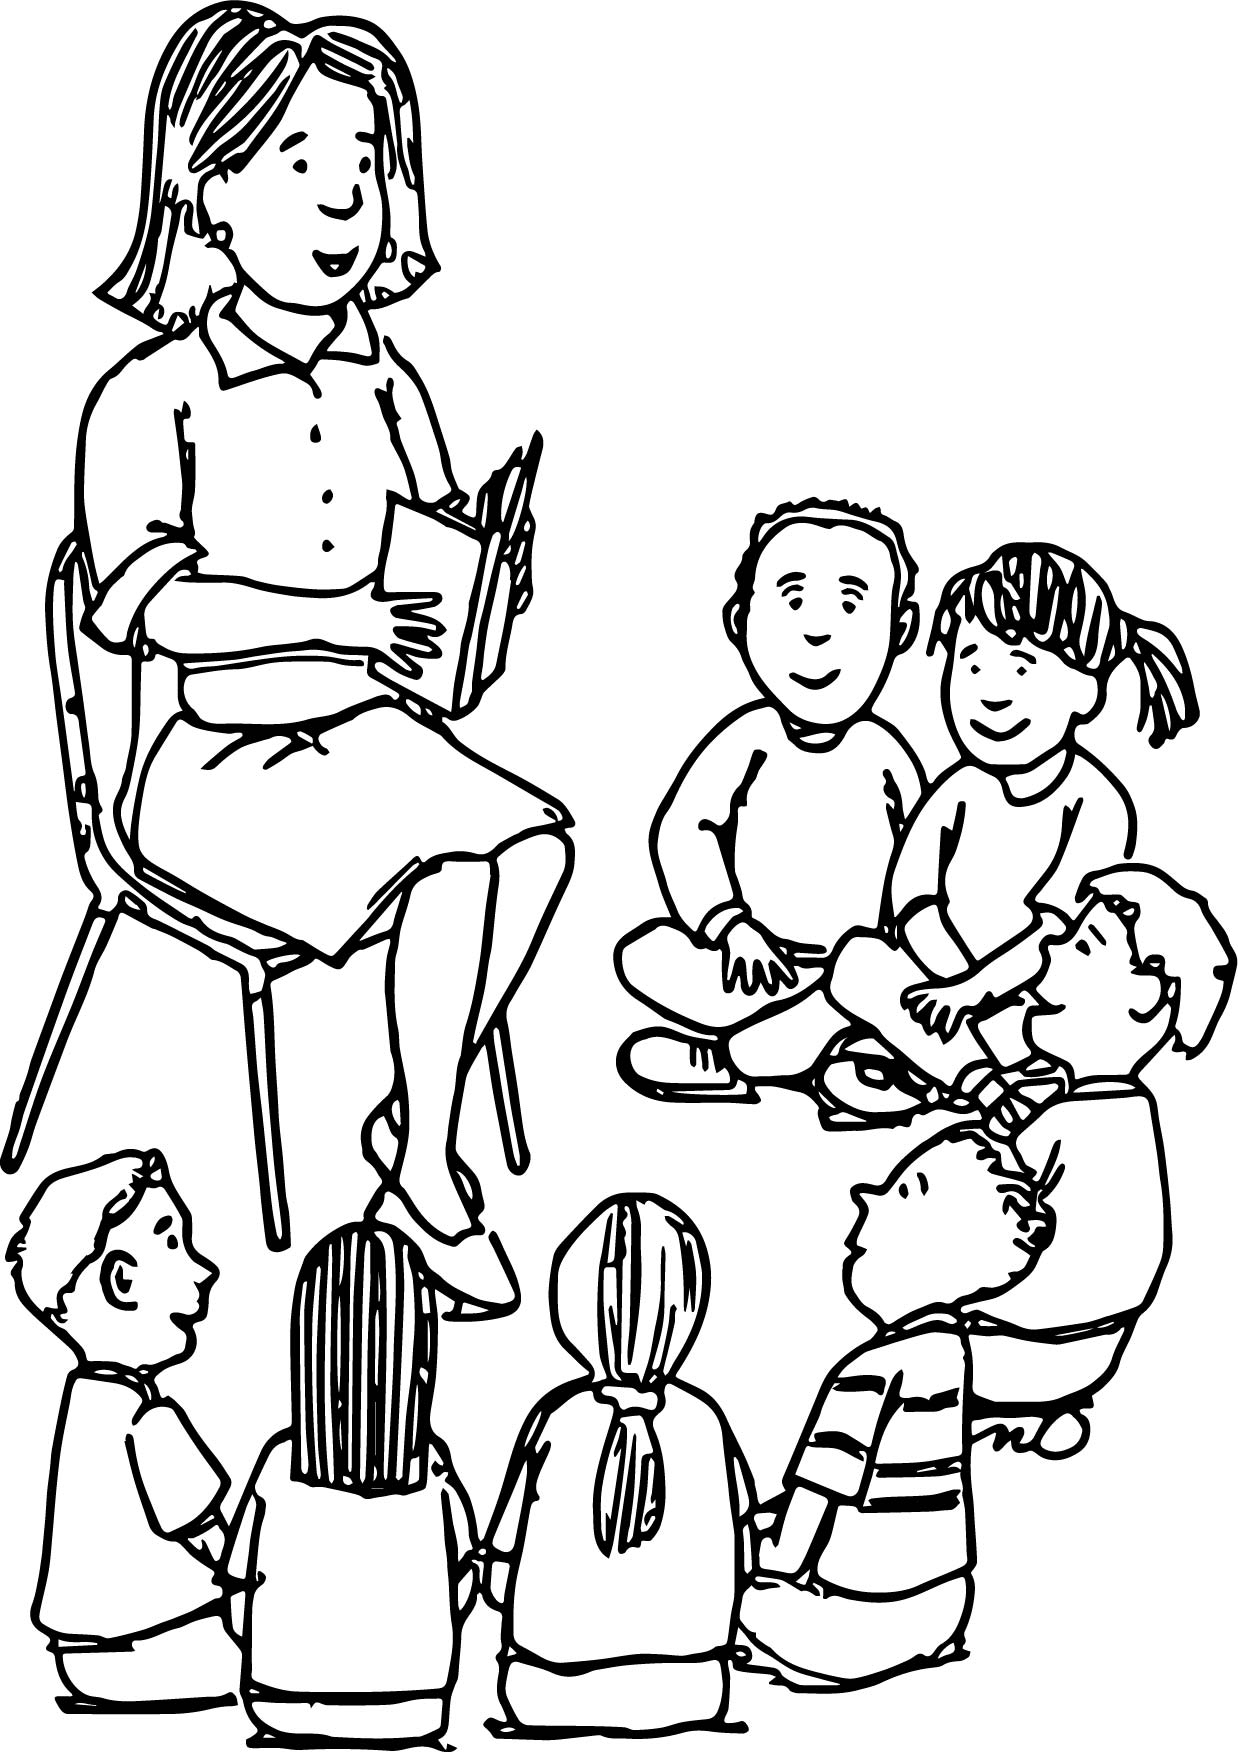 coloring pages of teachers - photo#4